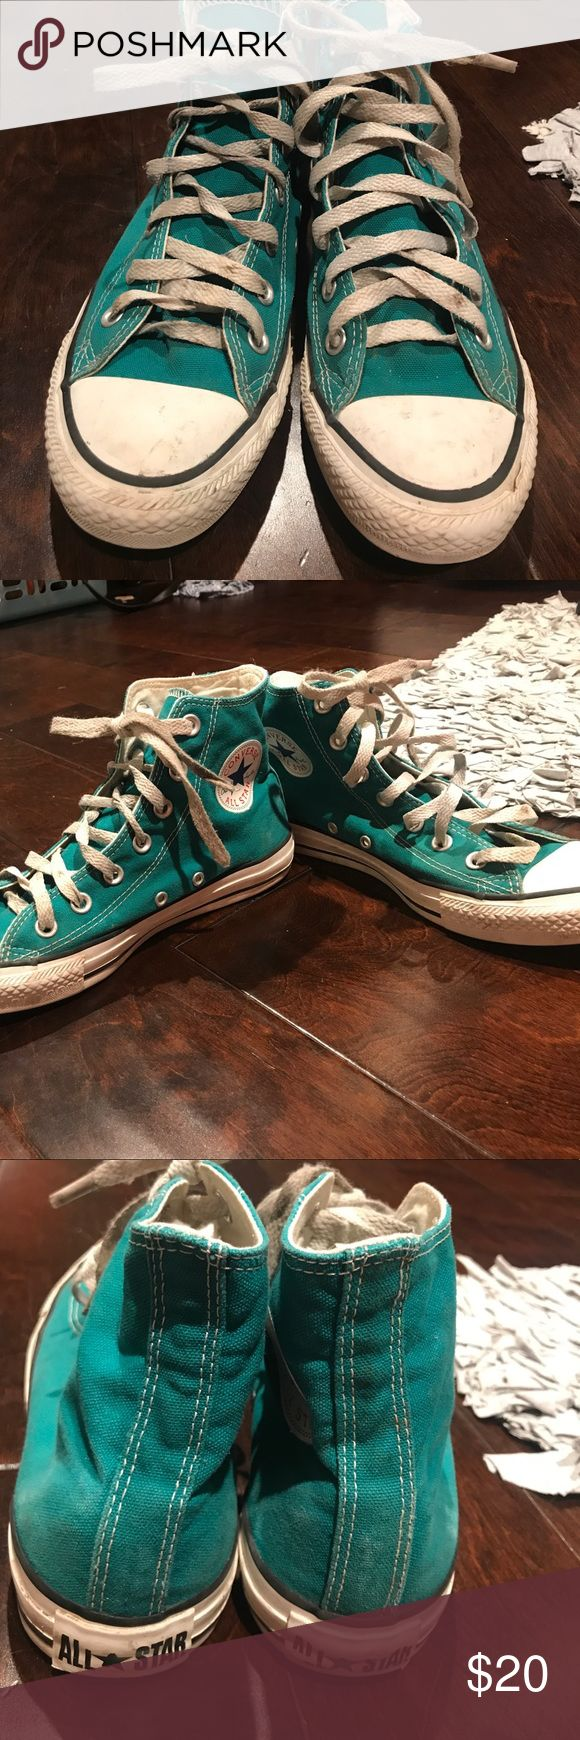 Teal converse Real converse bought for a costume- high tops Converse Shoes Sneakers